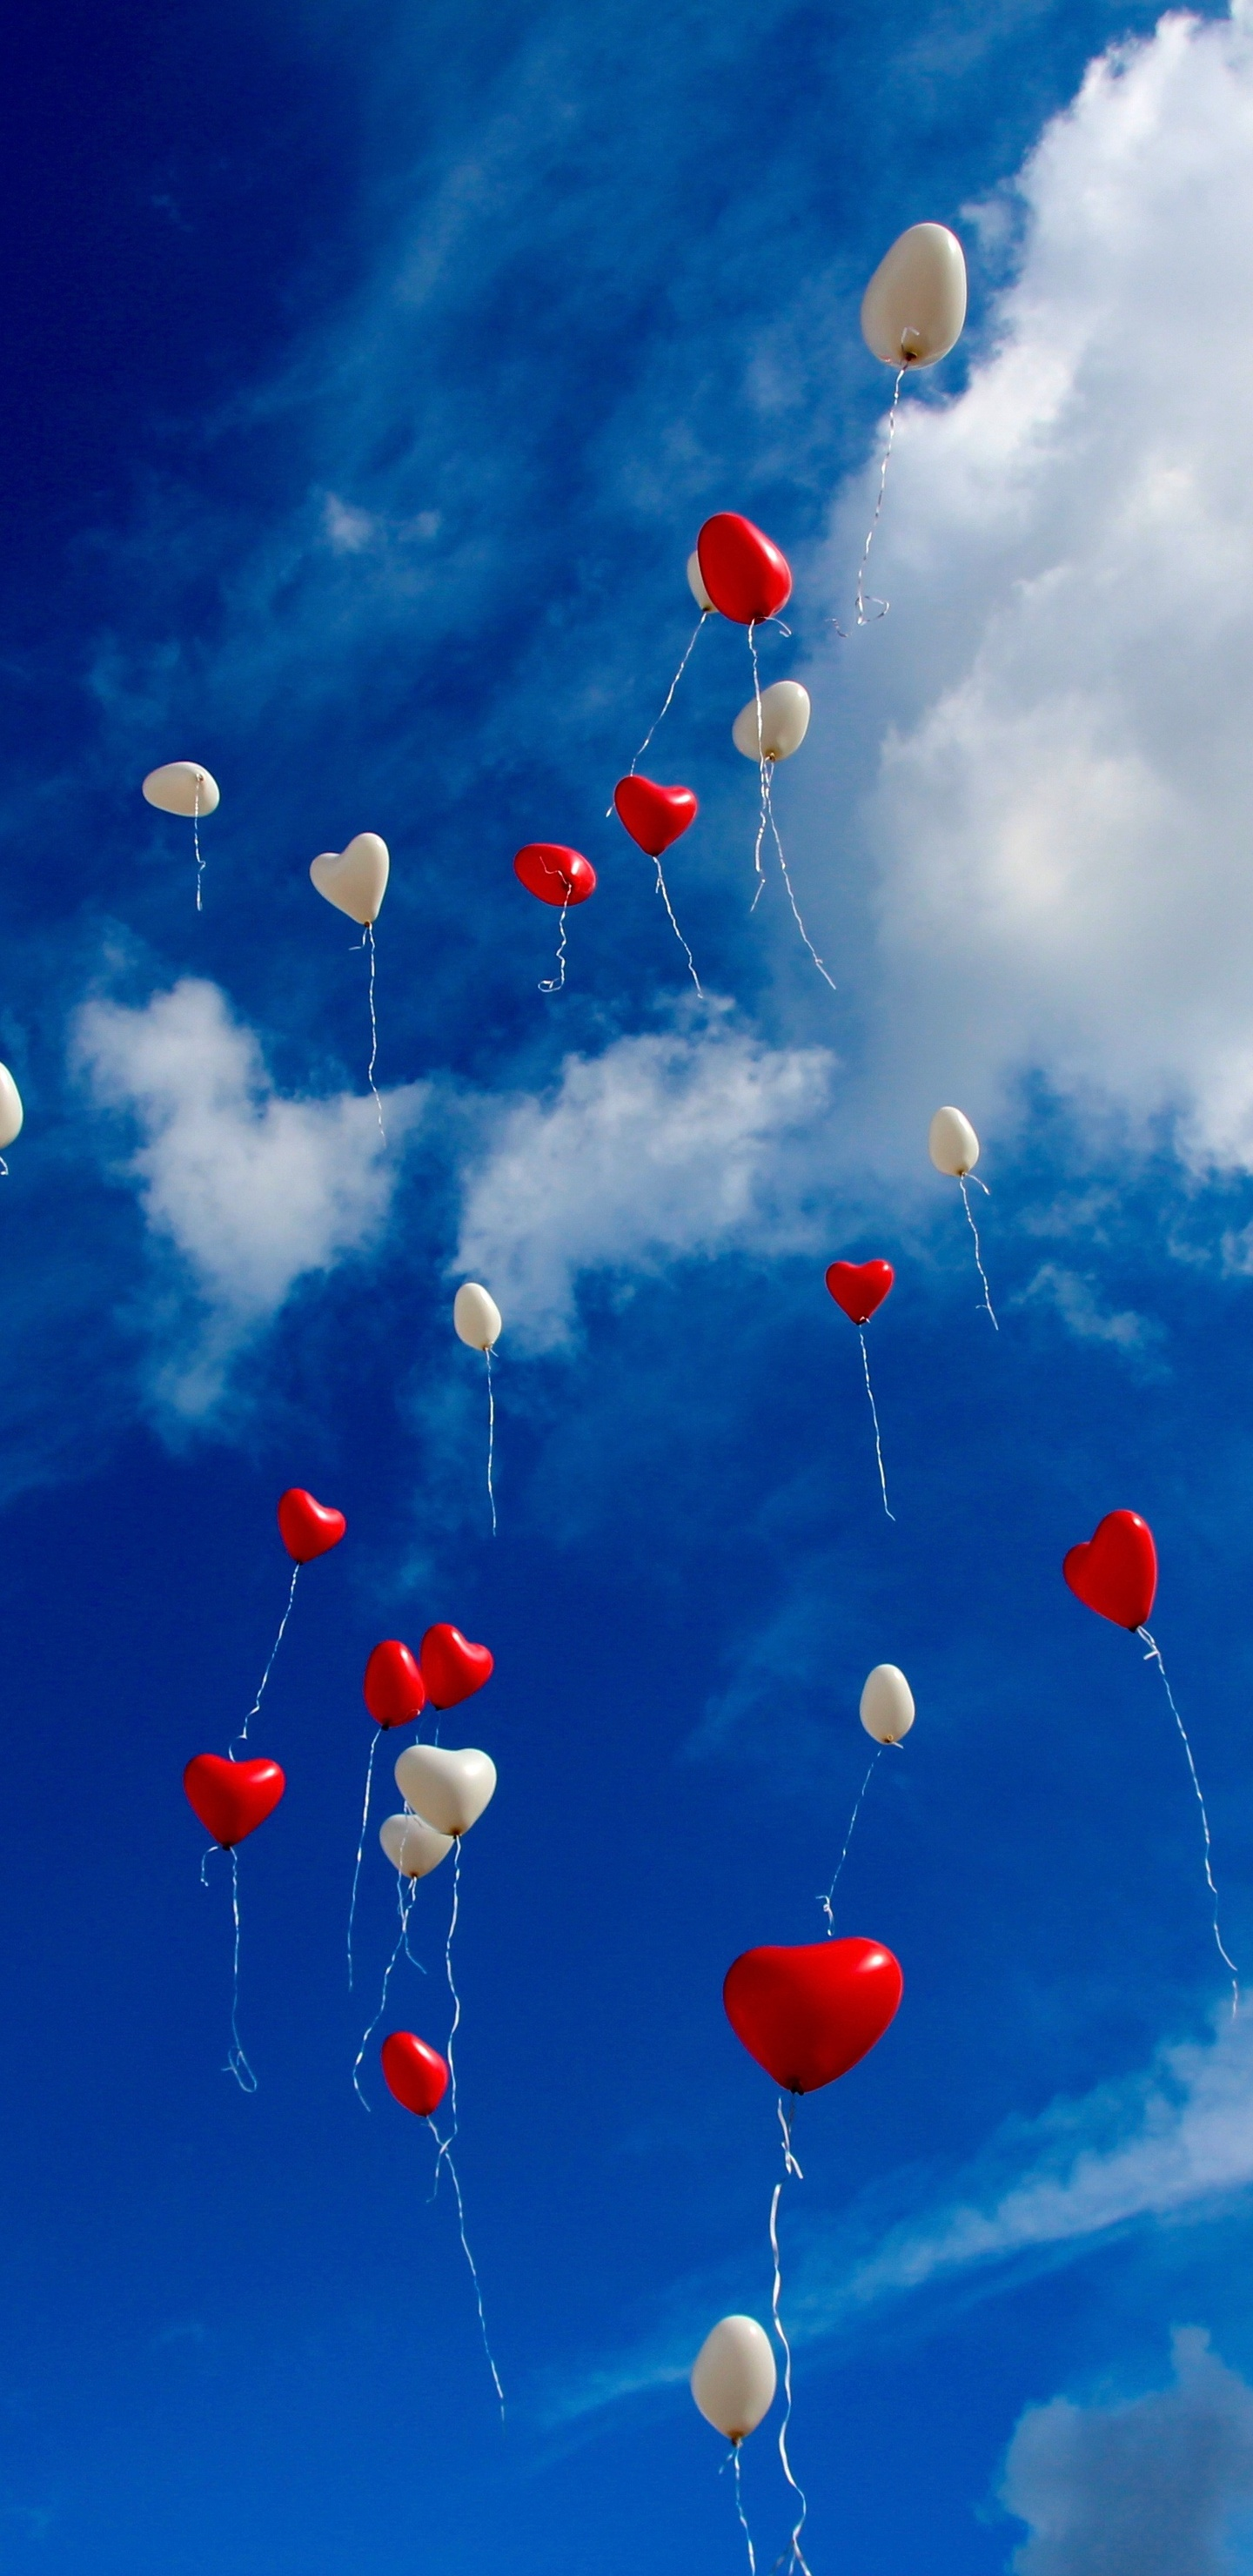 1440x2960 heart shape balloons in sky samsung galaxy note - Samsung s9 wallpaper 4k ...